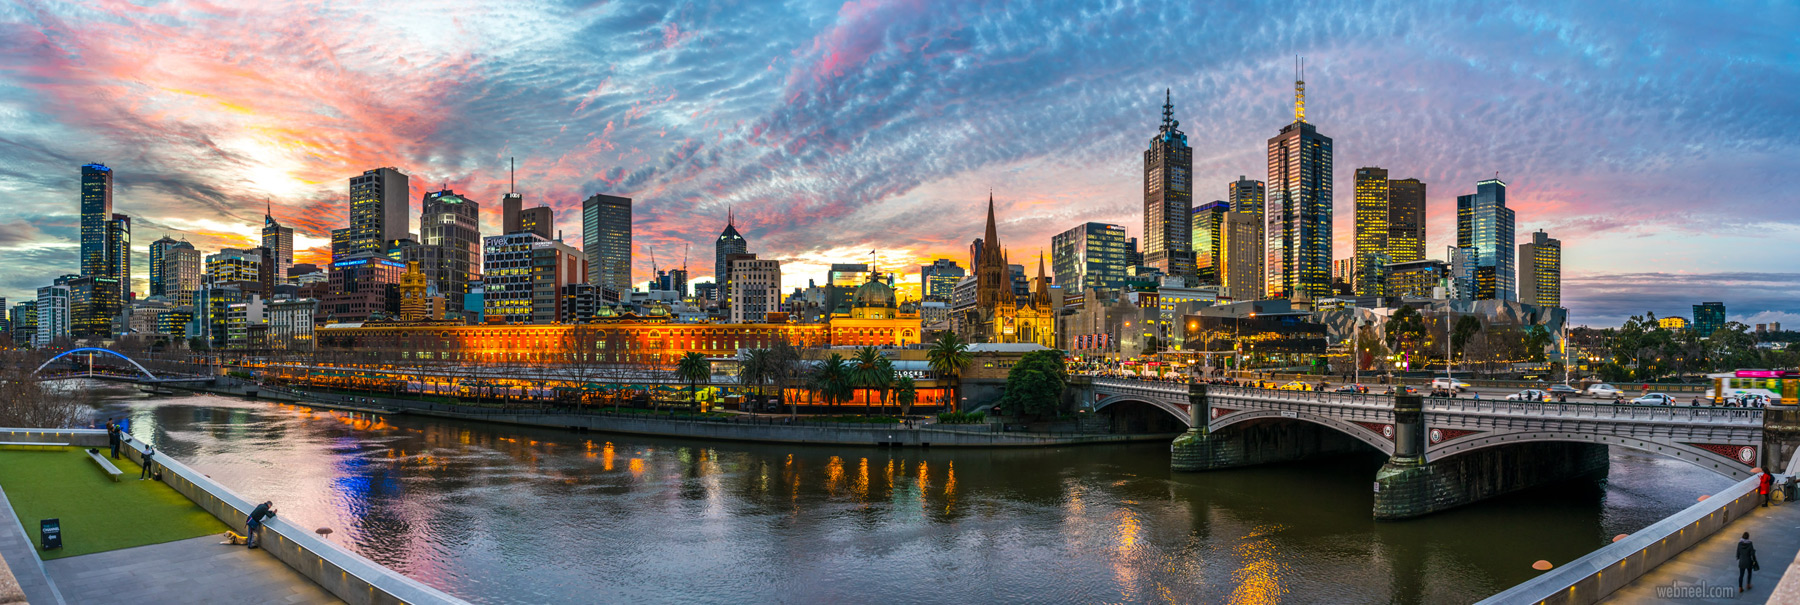 panoramic photography melbourne by steven wright